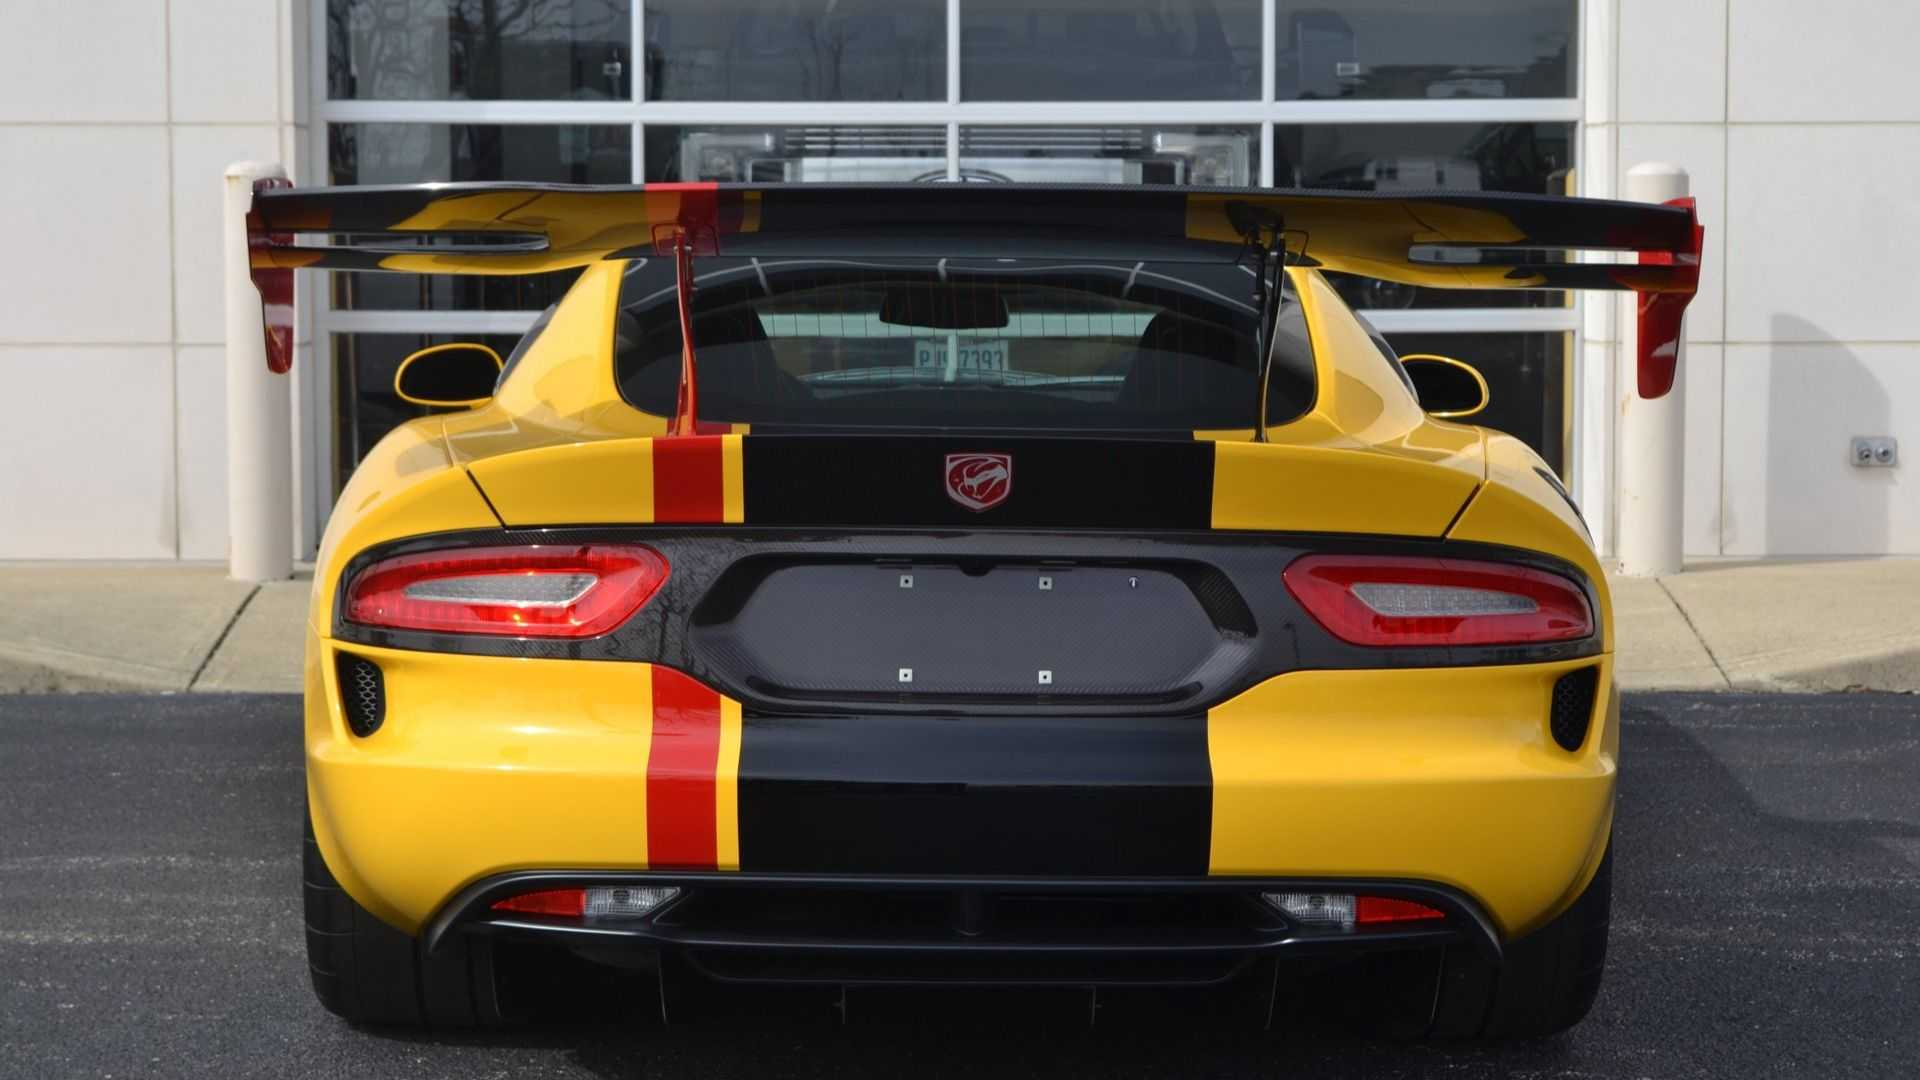 2016 Dodge Viper ACR Extreme: The Last Hurrah For The V10